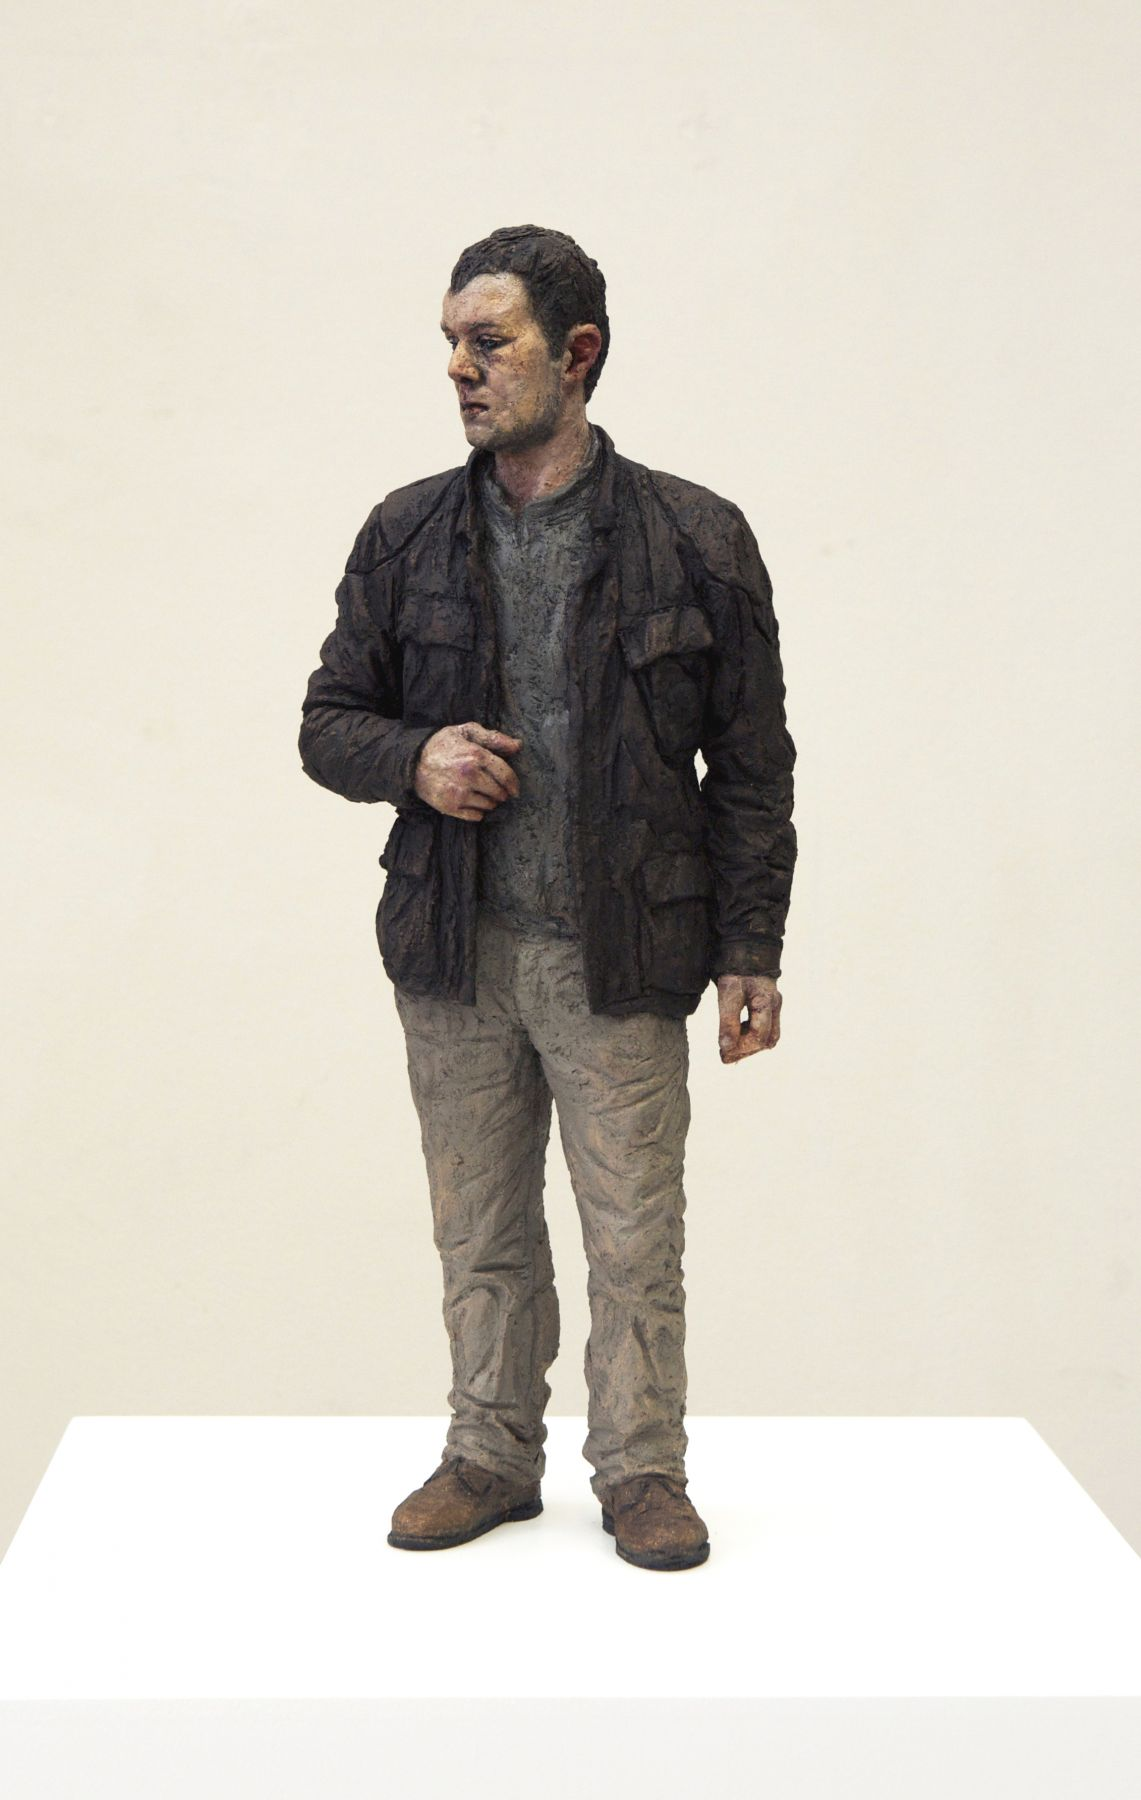 Sean Henry, Untitled (Man in Leather Jacket), 2010, bronze, oil paint, 21 x 8 1/4 x 6 inches, Edition 1/9